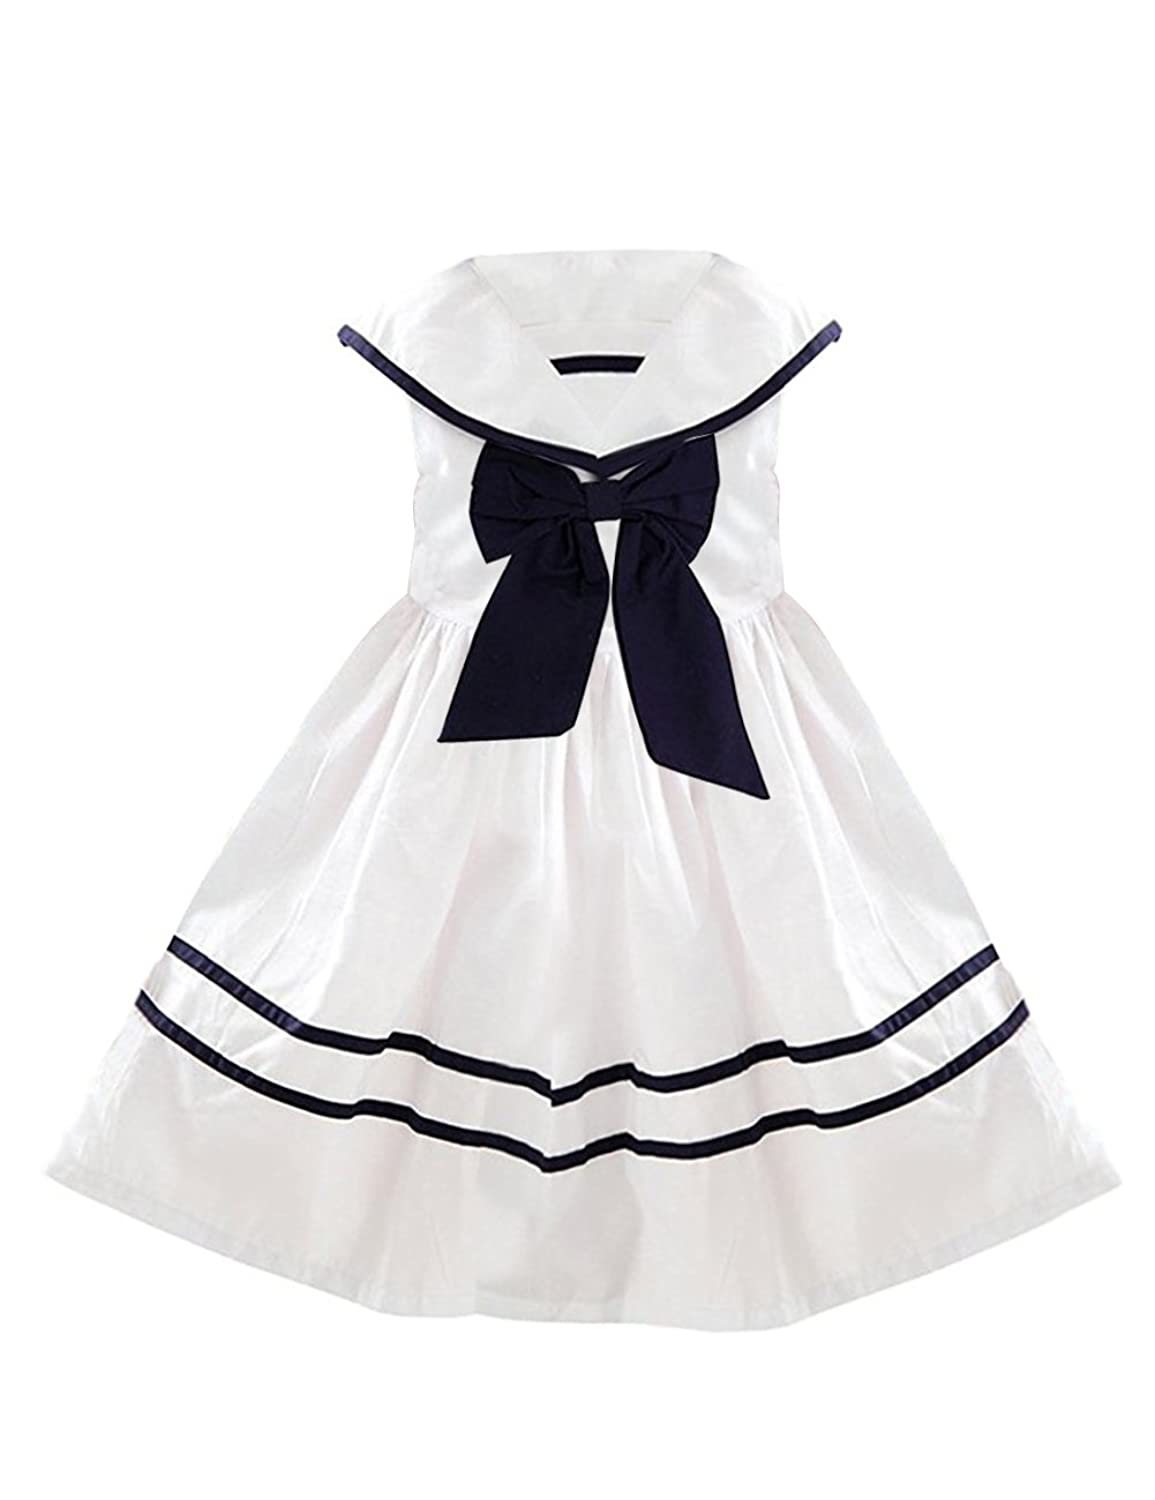 Vintage Style Children's Clothing: Girls, Boys, Baby, Toddler YJ.GWL Girl Nautical Dress Collar Sailor Dress with Bow-Tie $17.99 AT vintagedancer.com